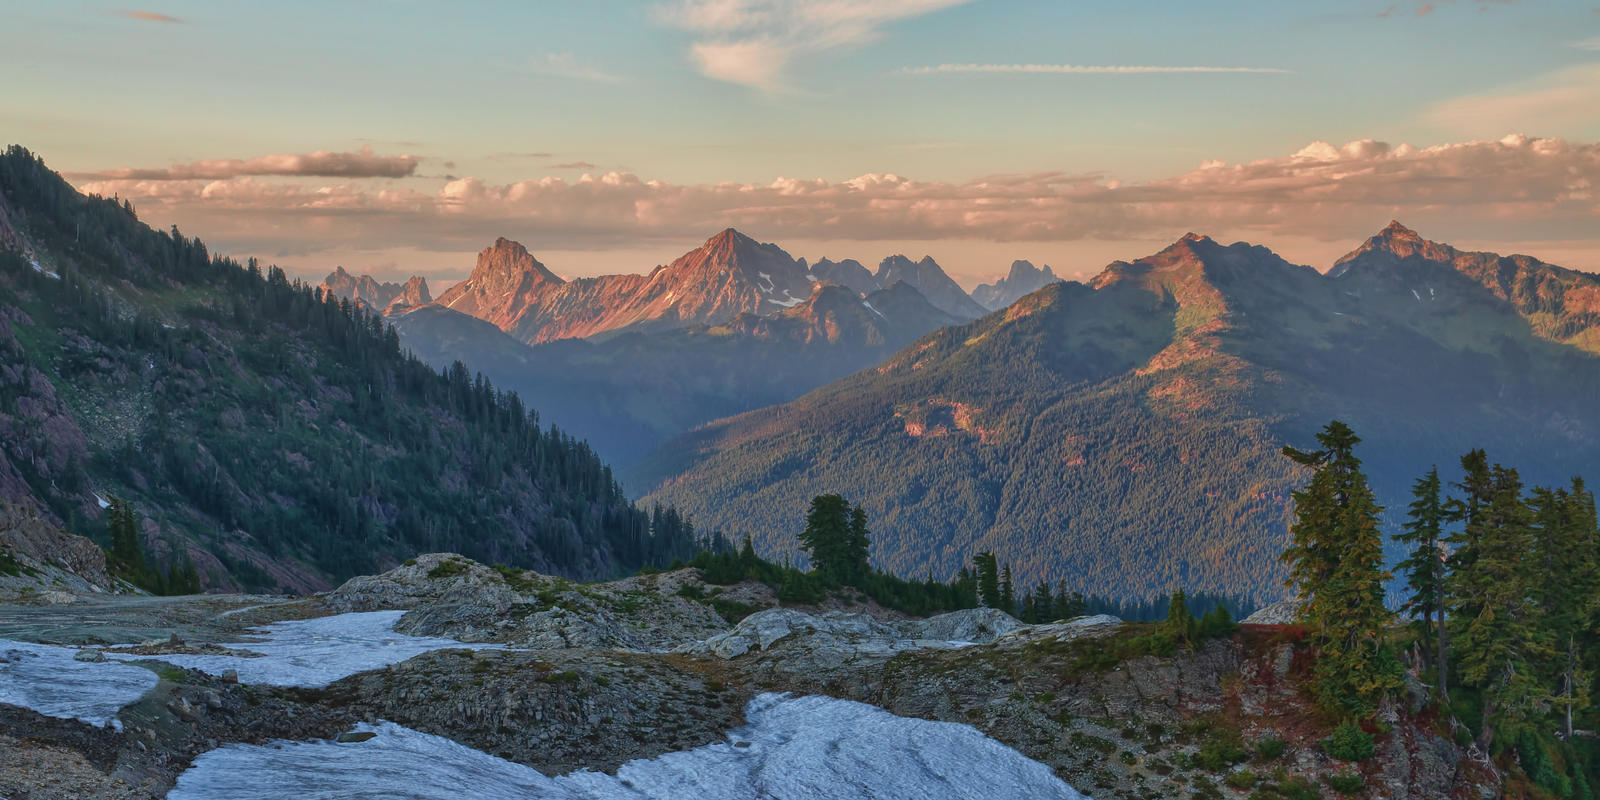 Sunset from Mount Baker by arnaudperret